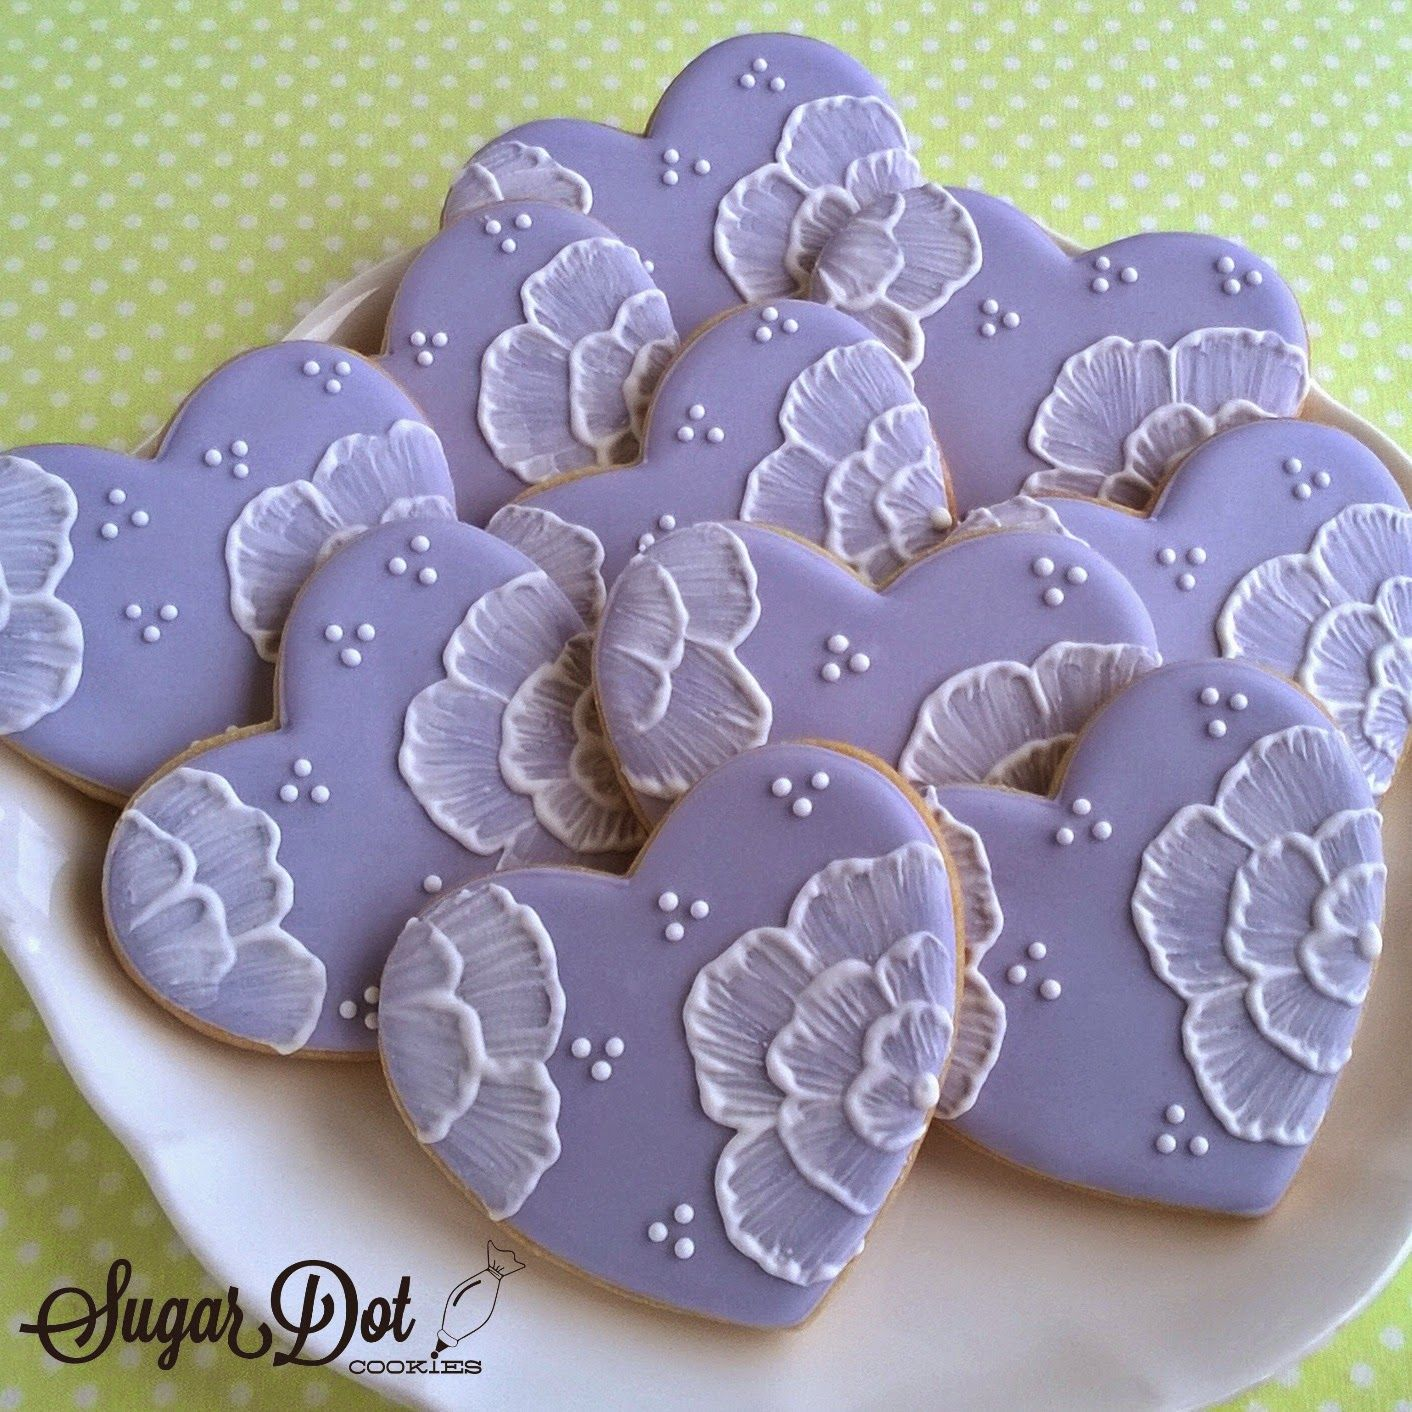 Brush Embroidered Heart Cookies Sugar Dot Cookies Royal icing